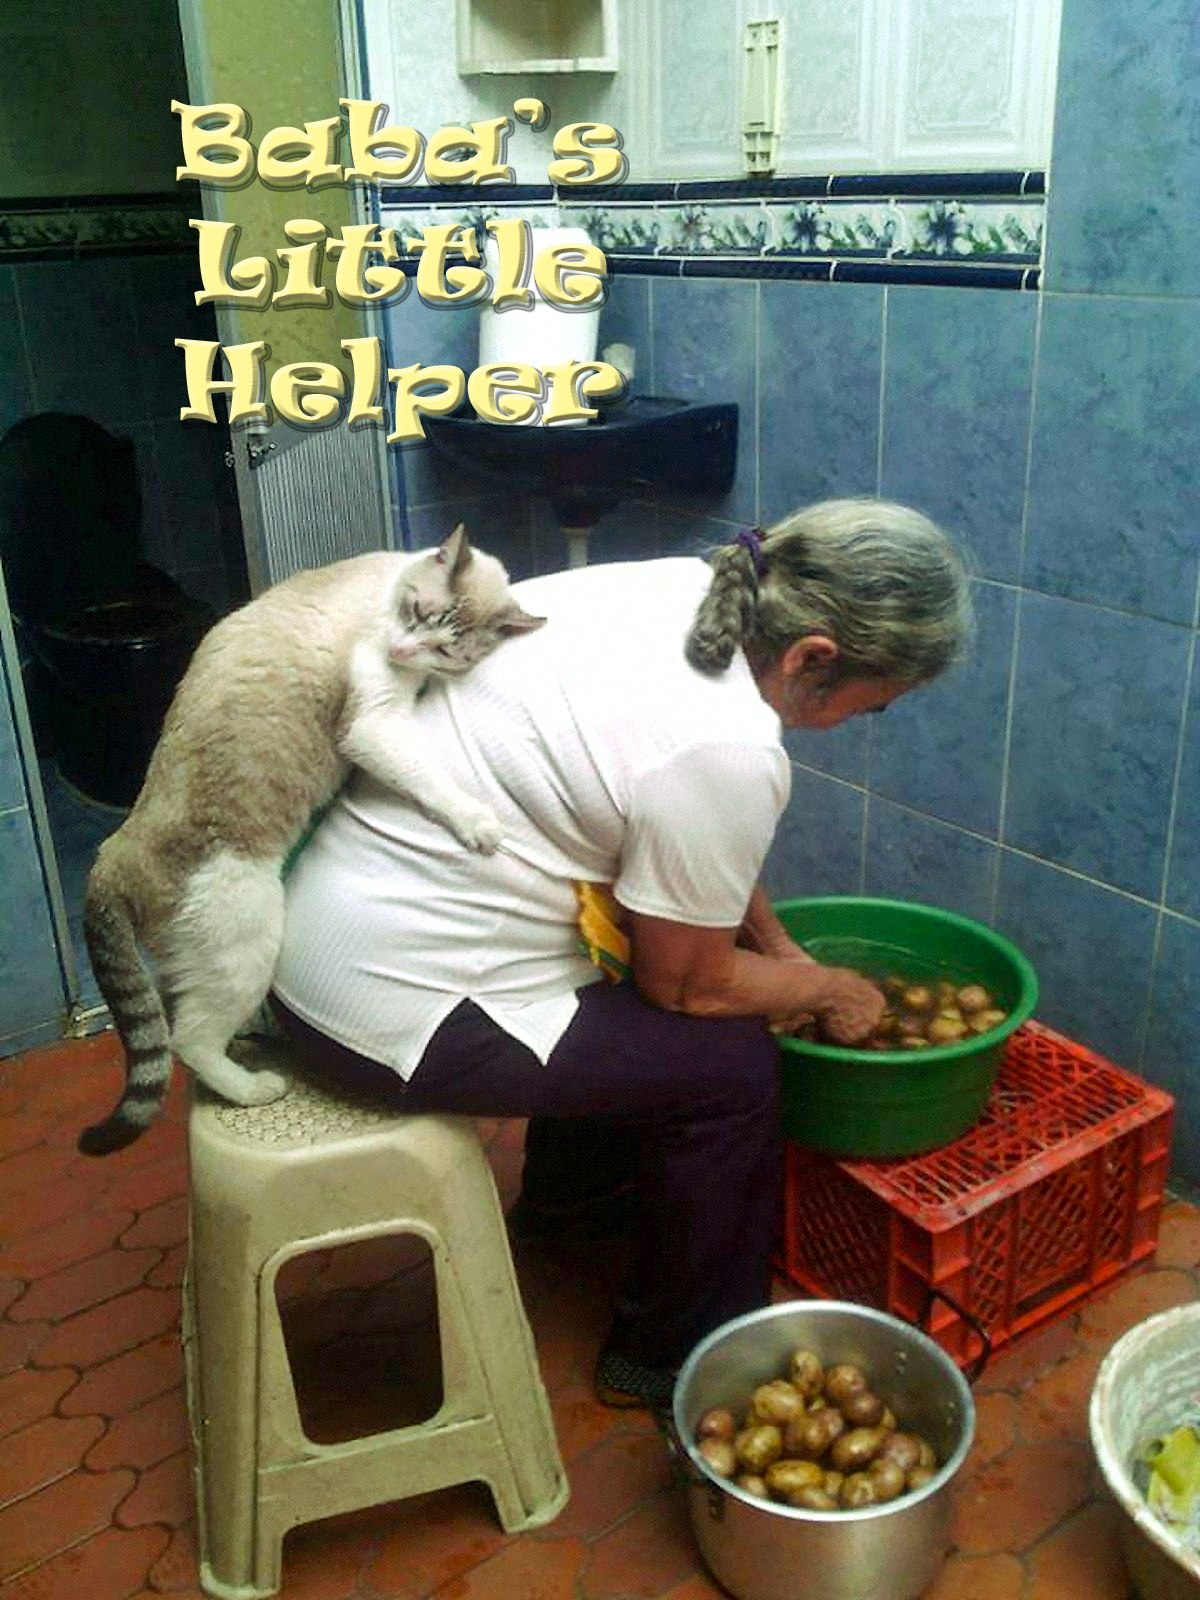 00 cat babas helper 121215